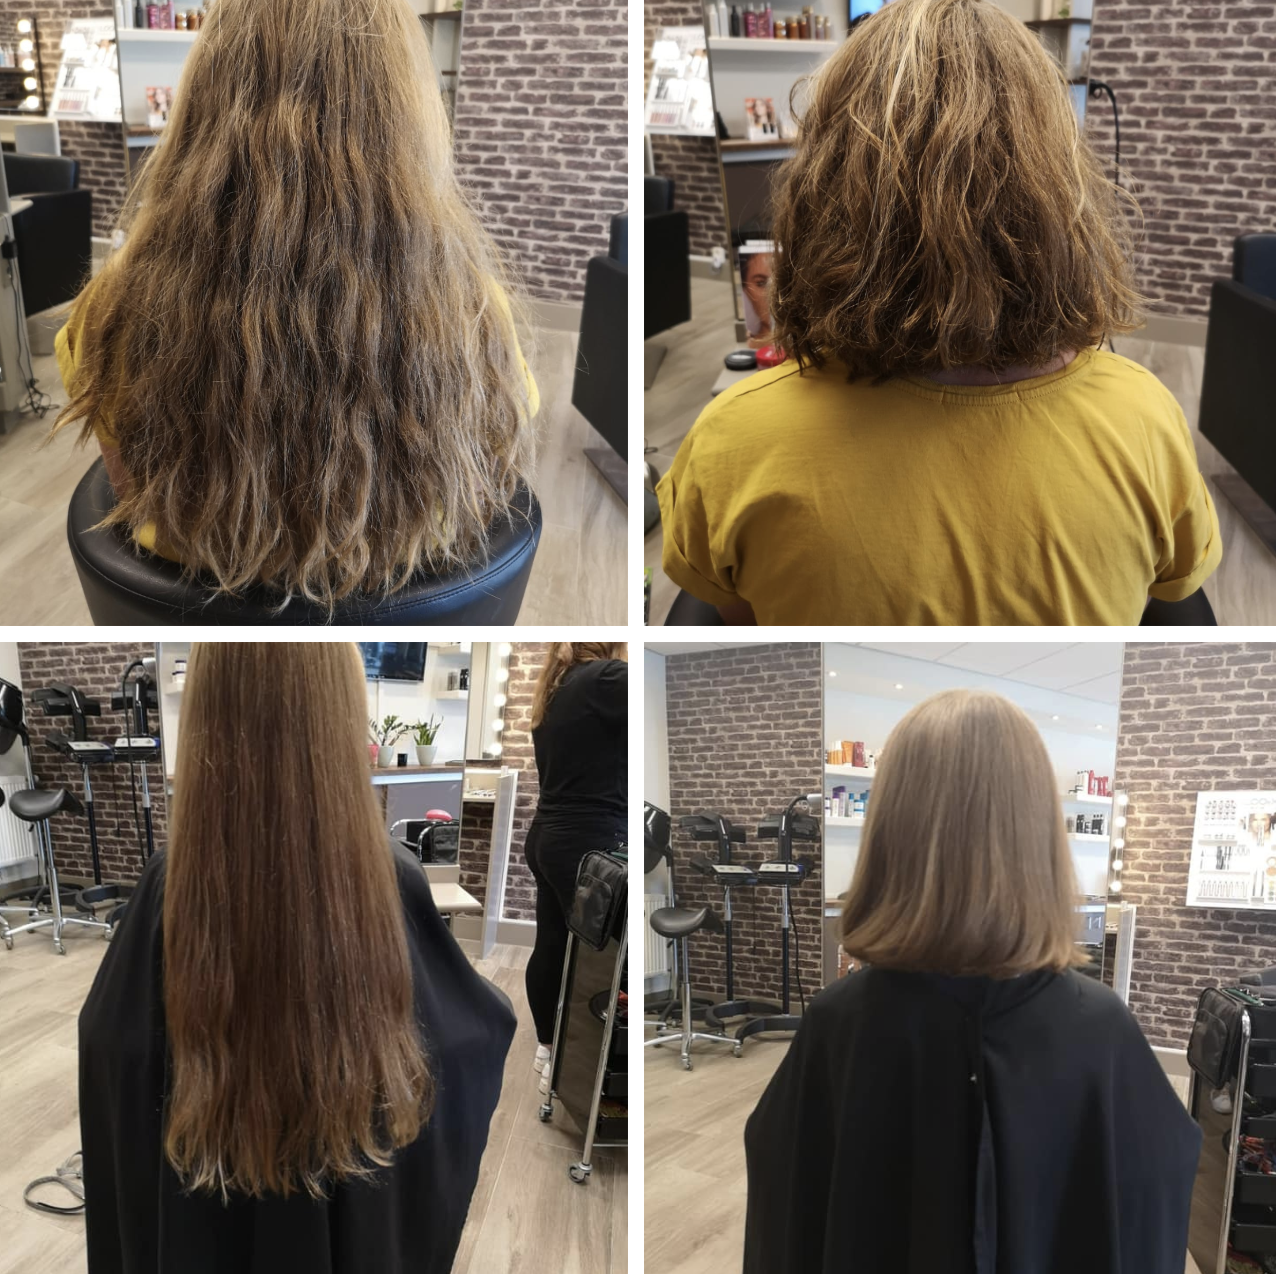 haardonatie-hairdesign